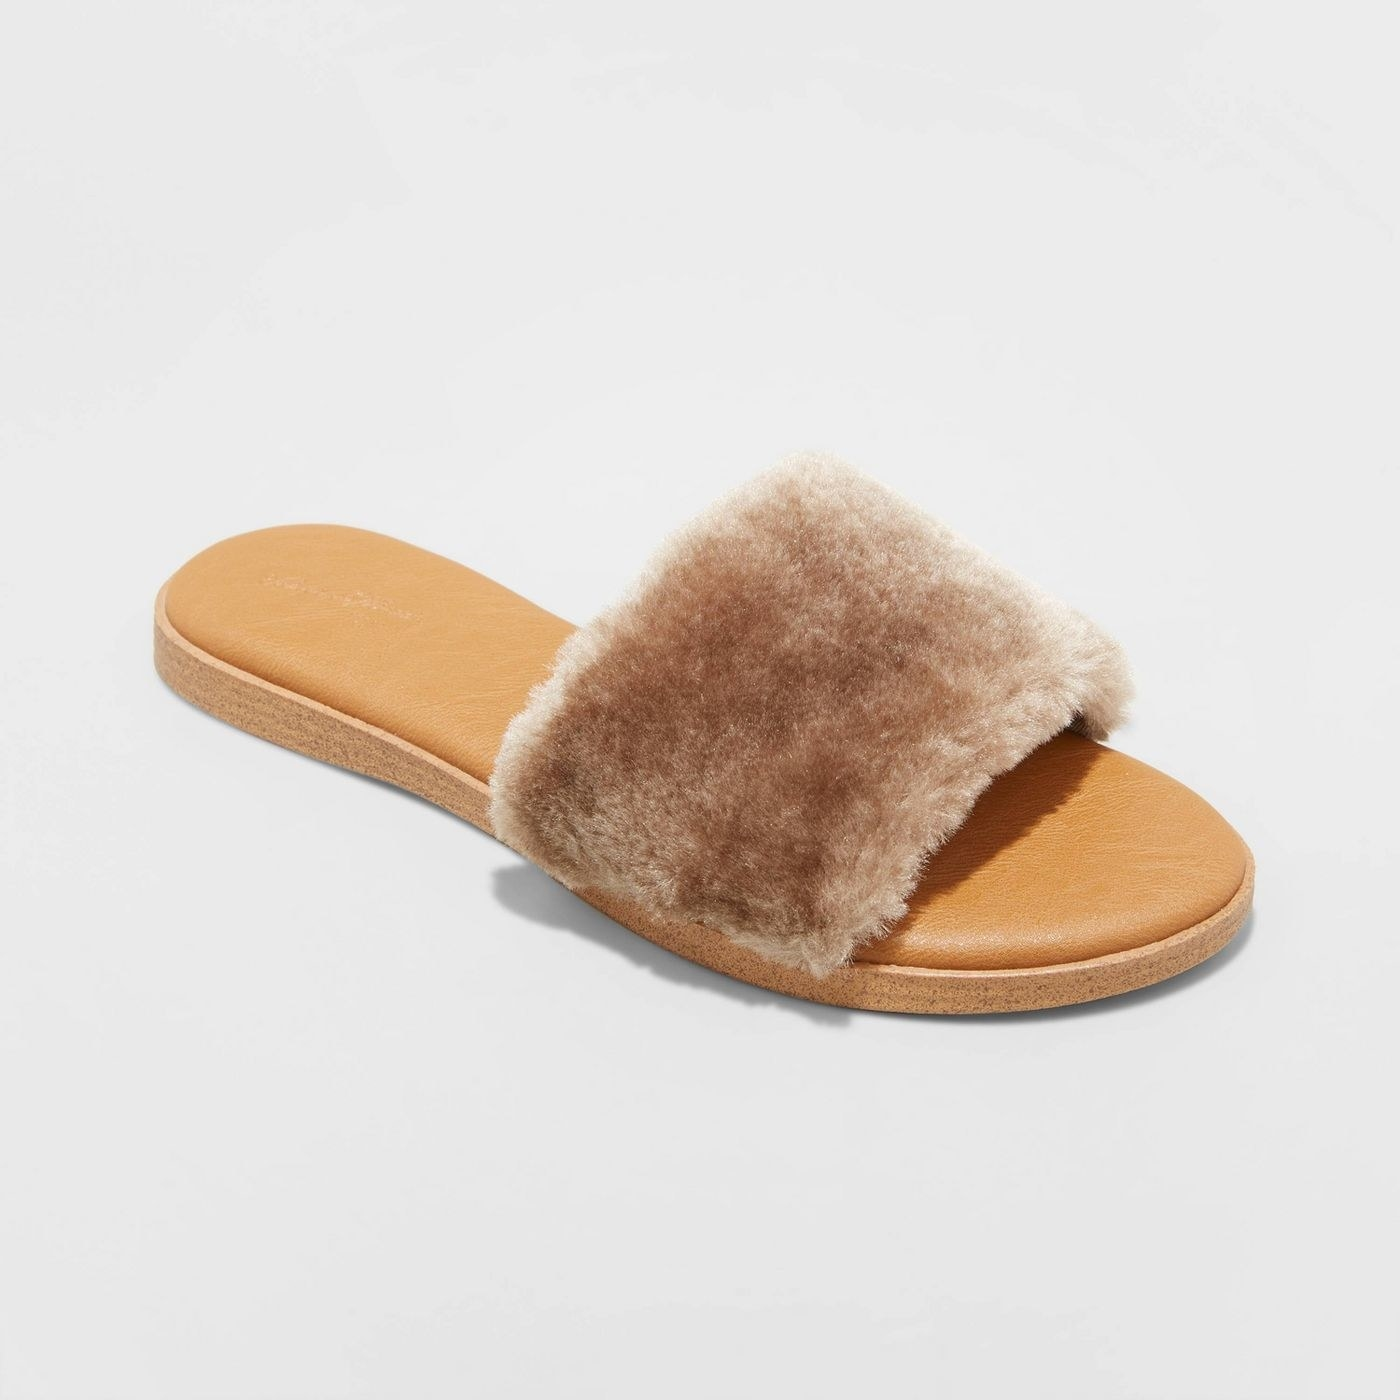 Sandals with tan fur and tan padded sole